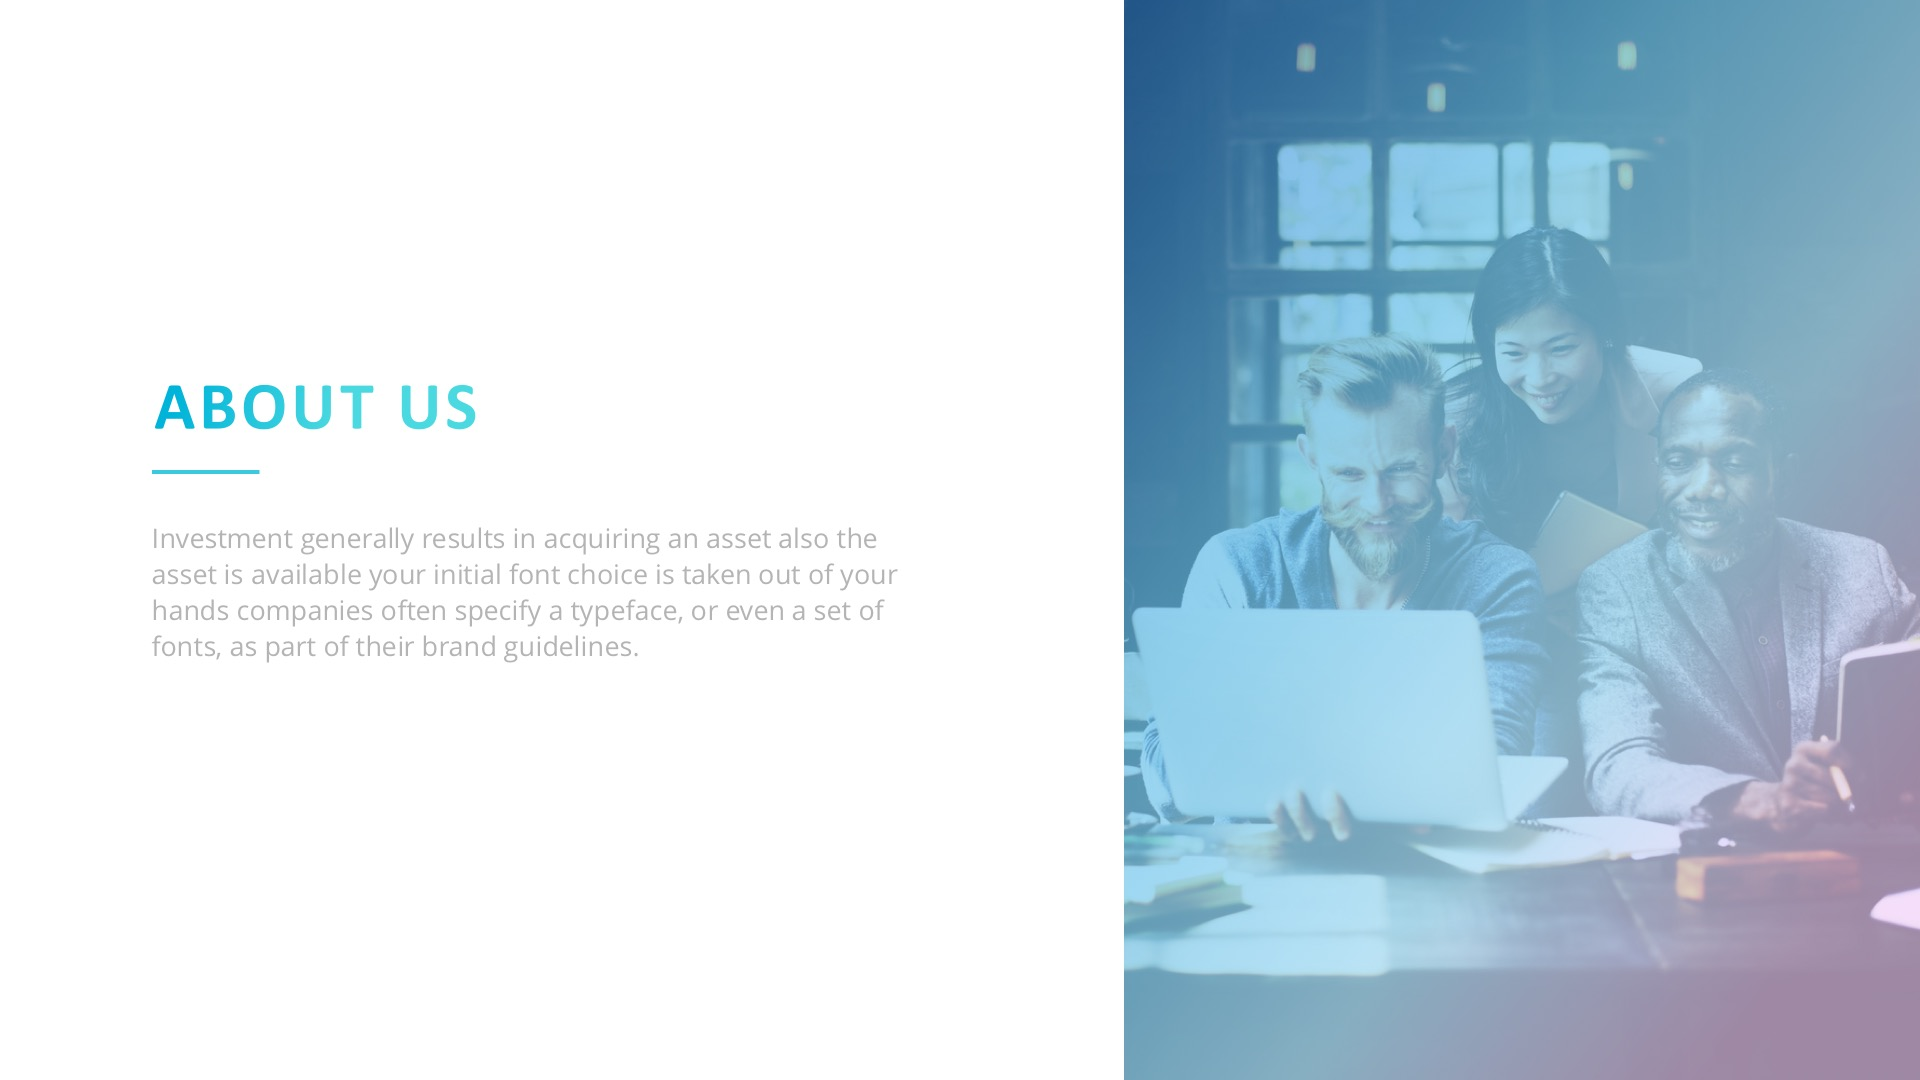 Startup company pitch deck powerpoint template by slidefusion pitch deck powerpoint templates startup company screensslide01g startup company screensslide02g alramifo Images